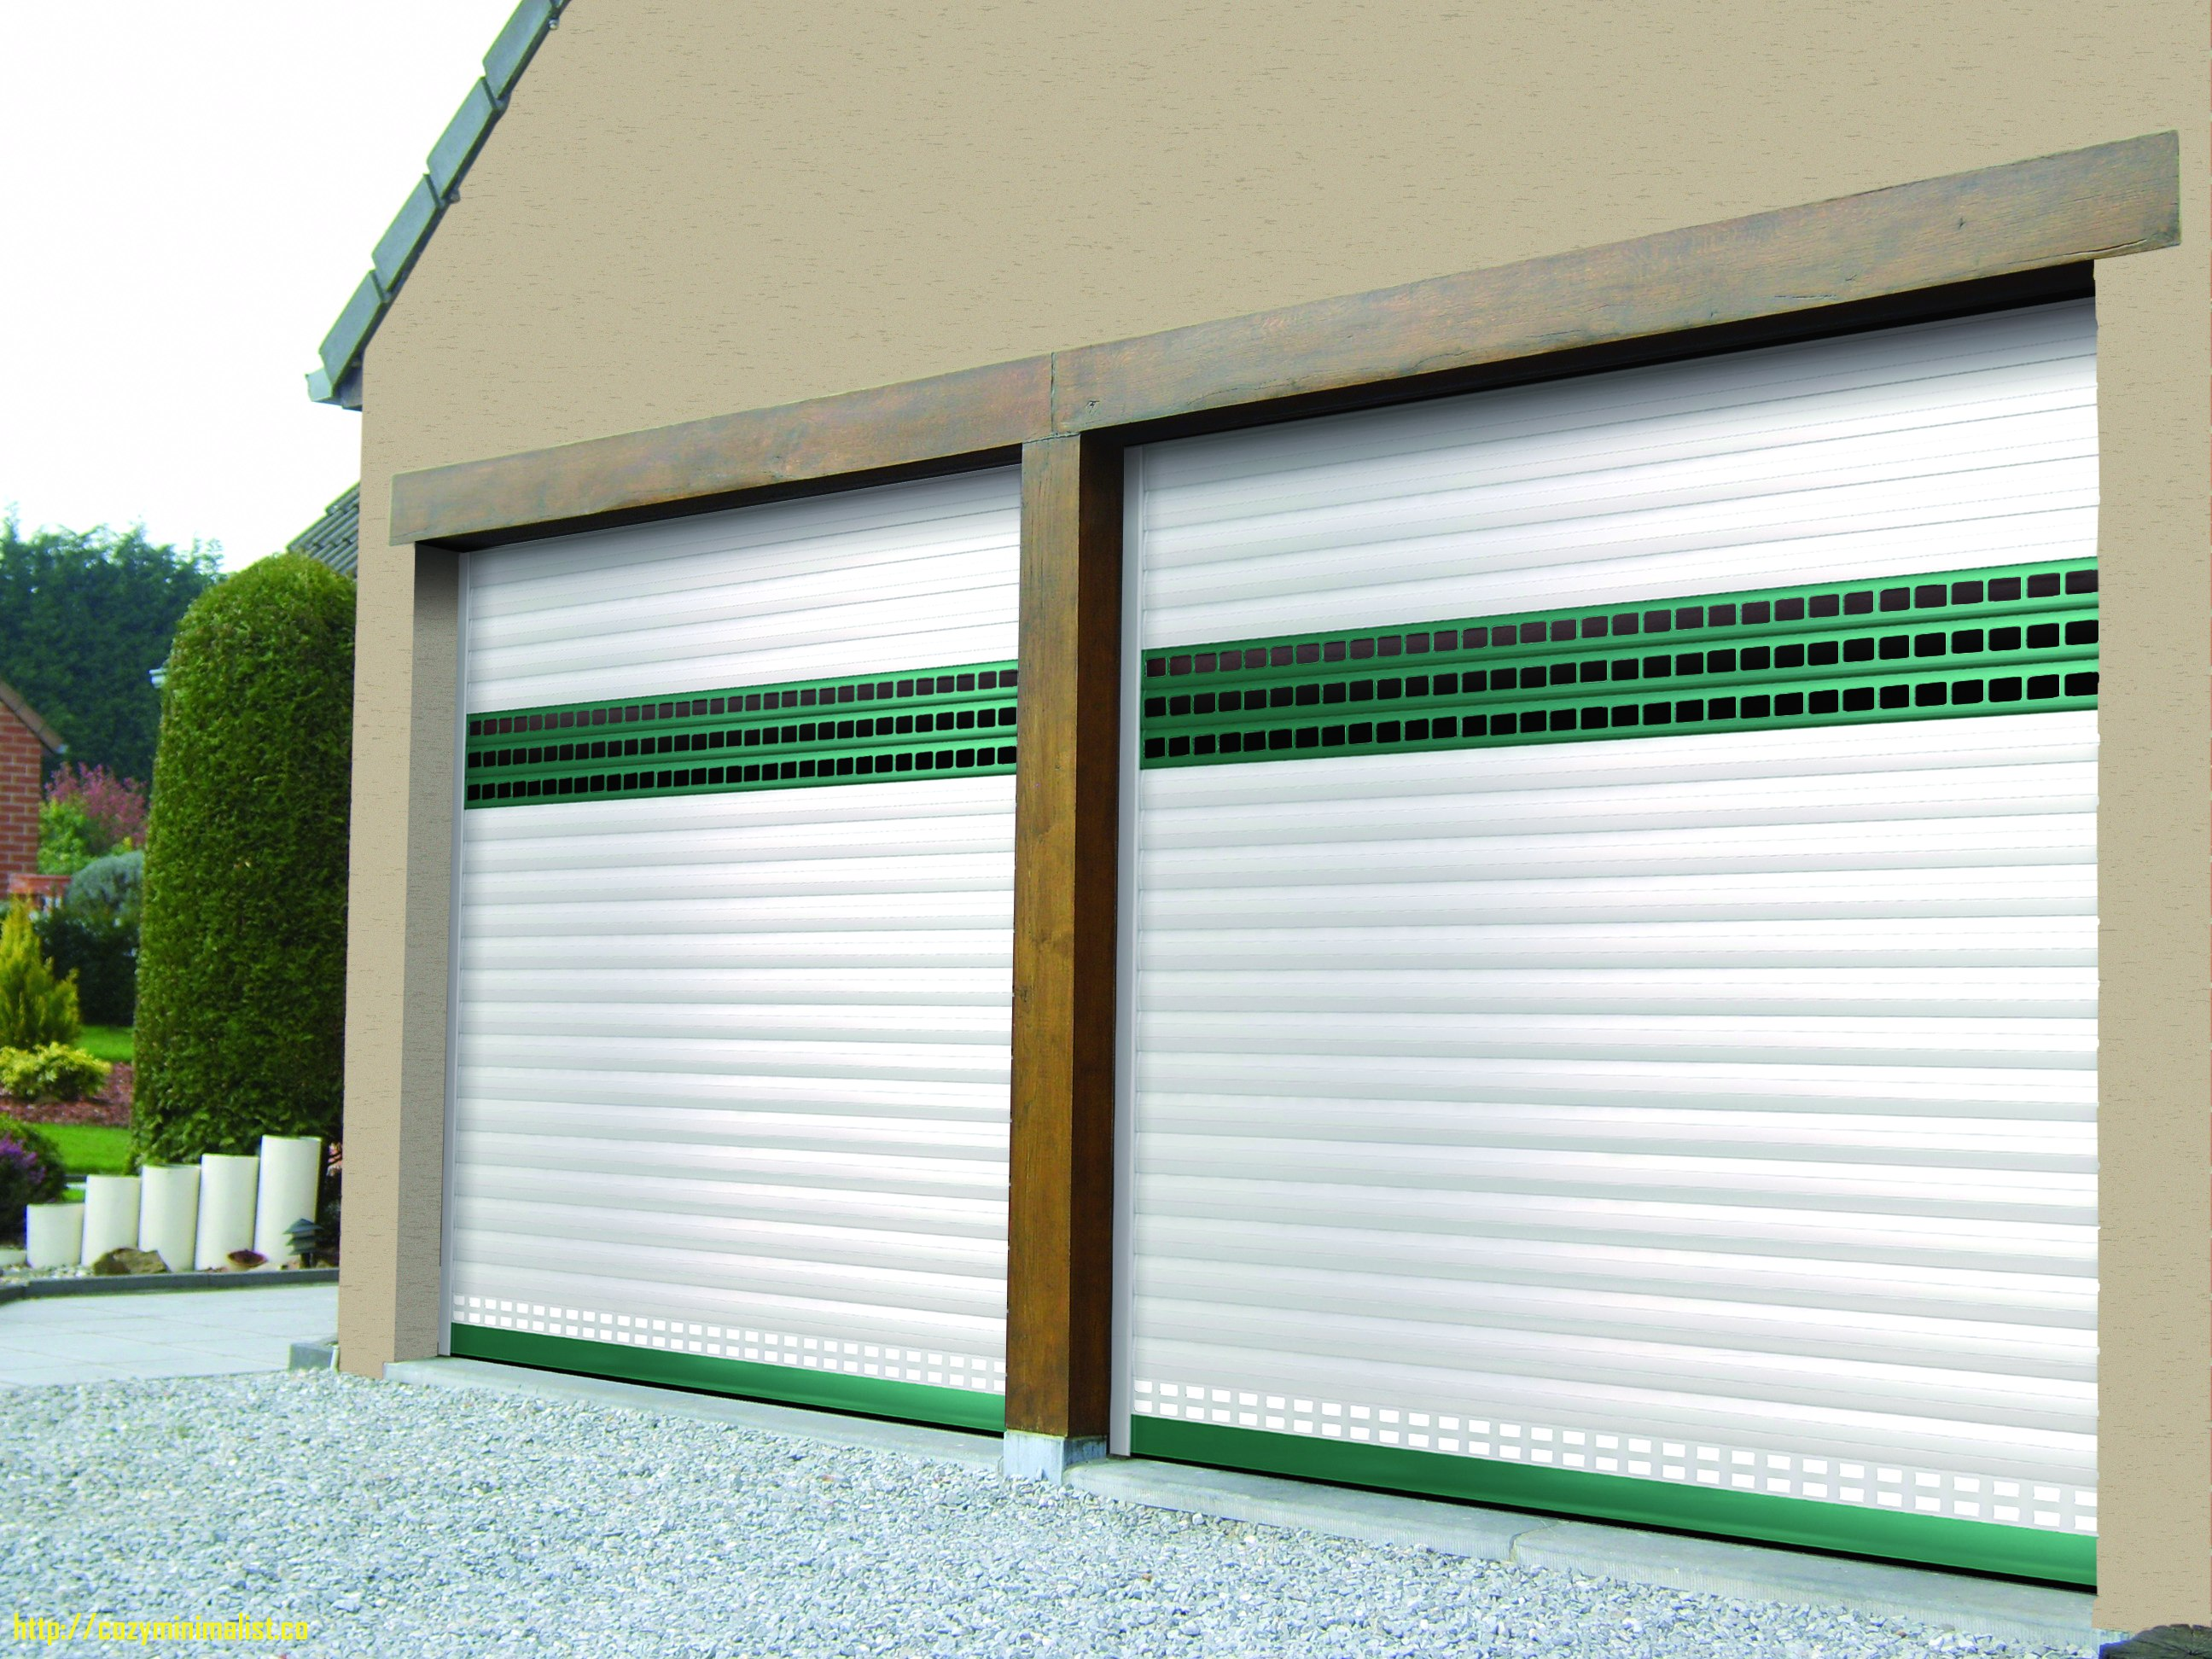 Porte de garage enroulable bubendorff isolation id es - Porte de garage eveno ...